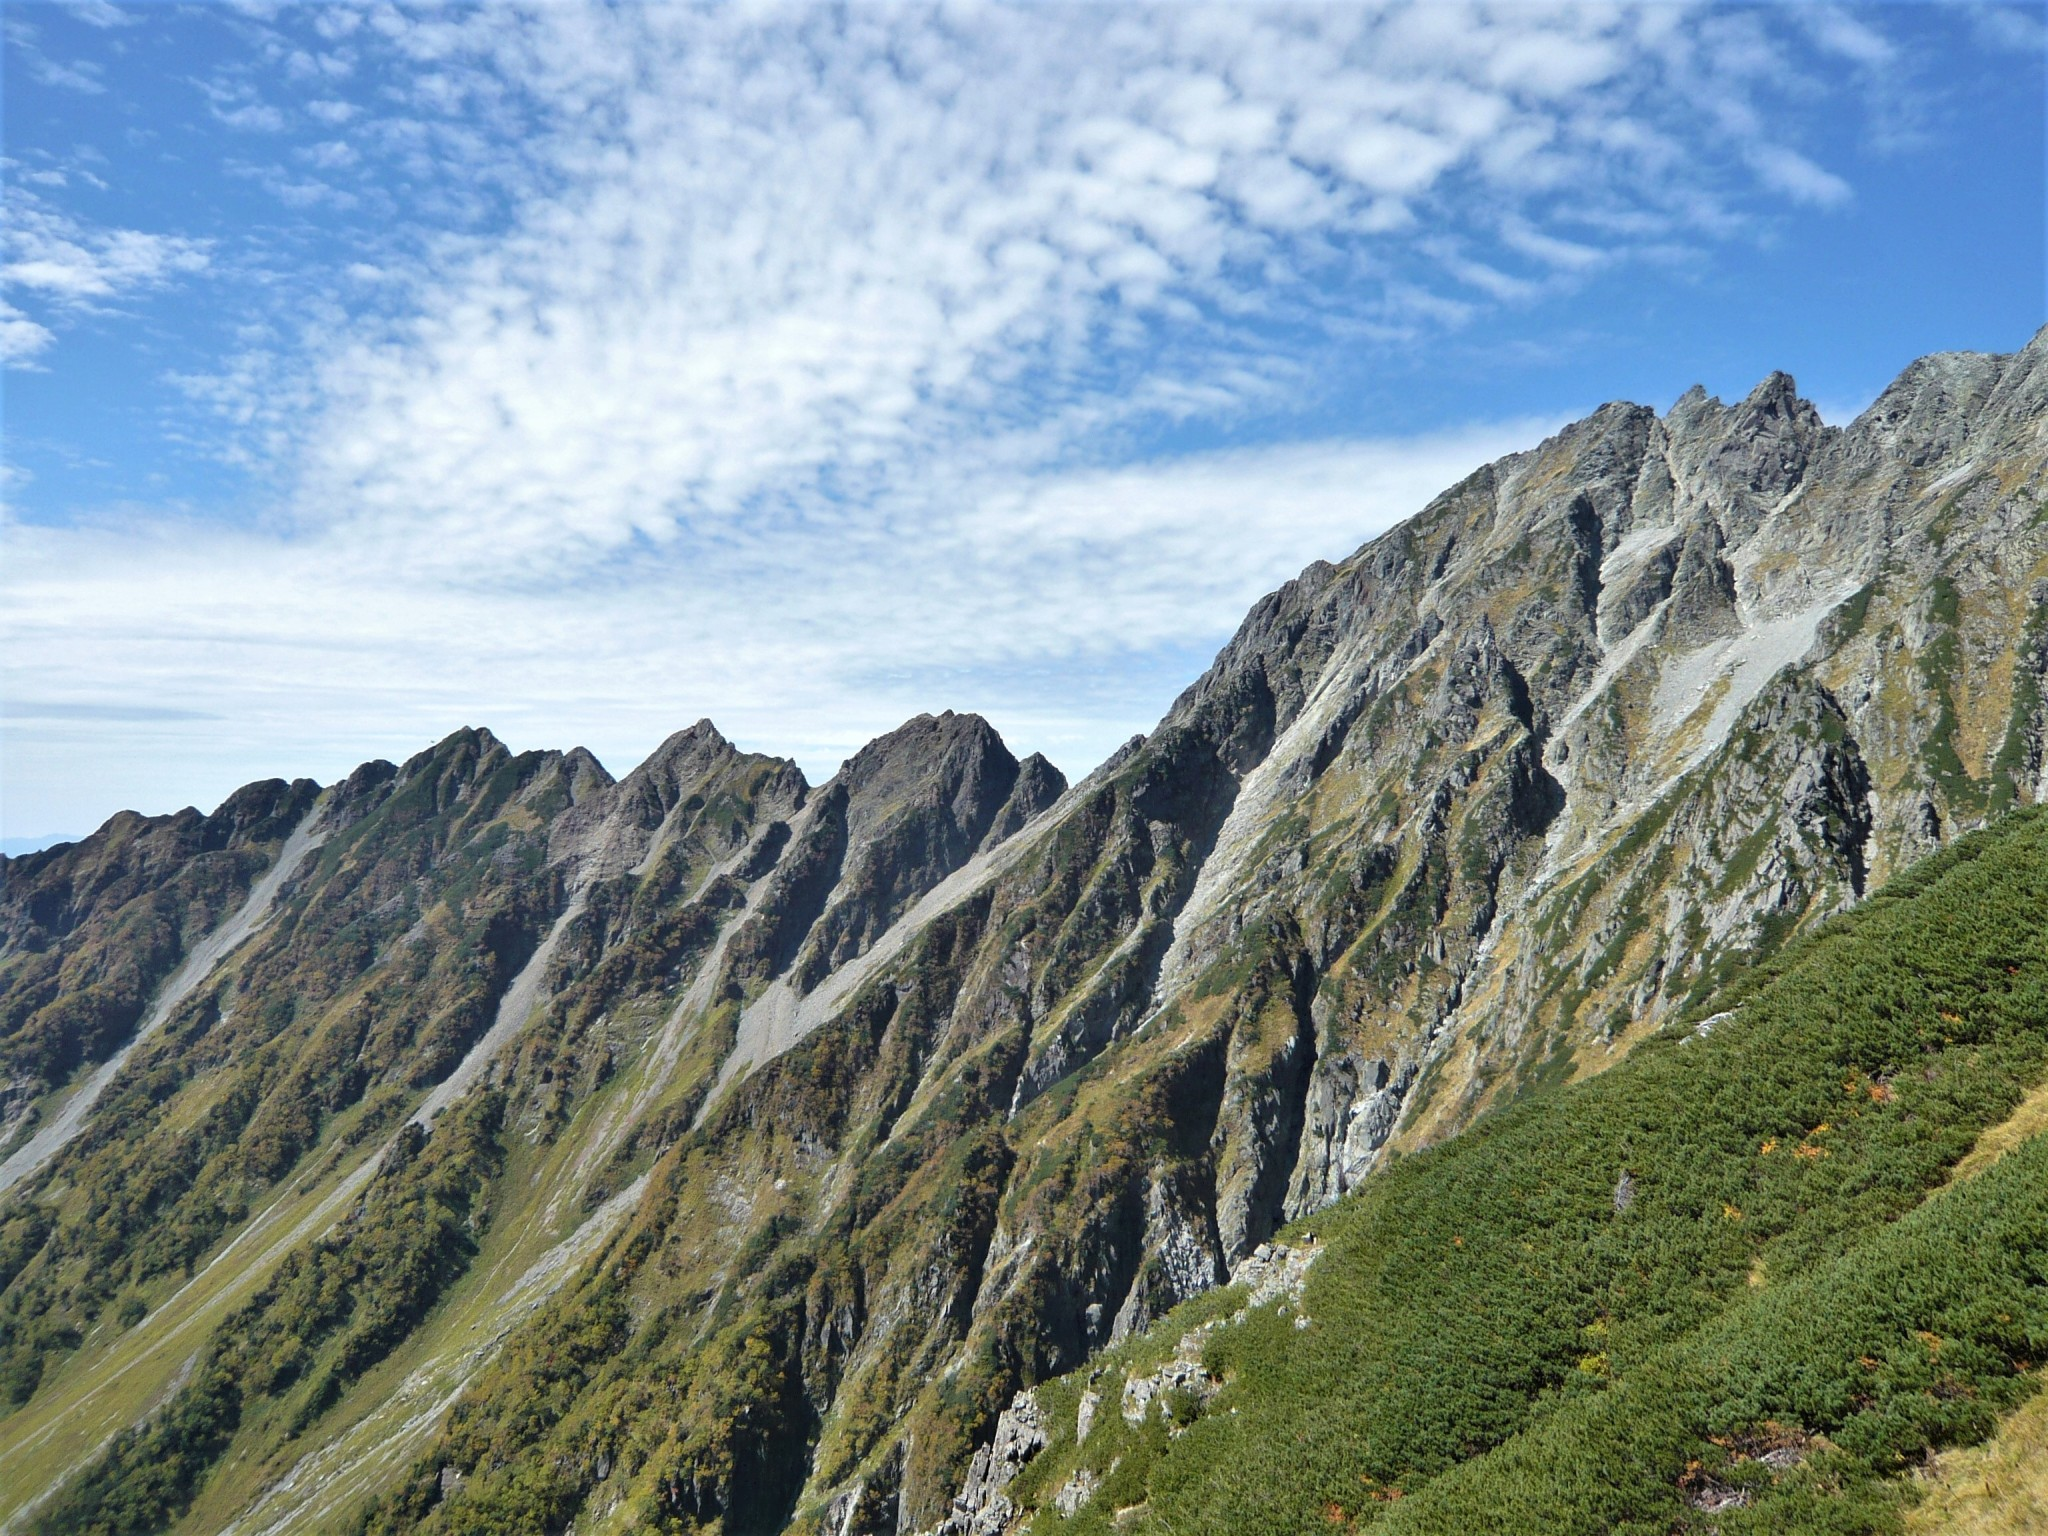 The jagged contours of a mountain ridgeline shaped like Godzilla's back beneath a partially cloudy sky in the Japan Alps.